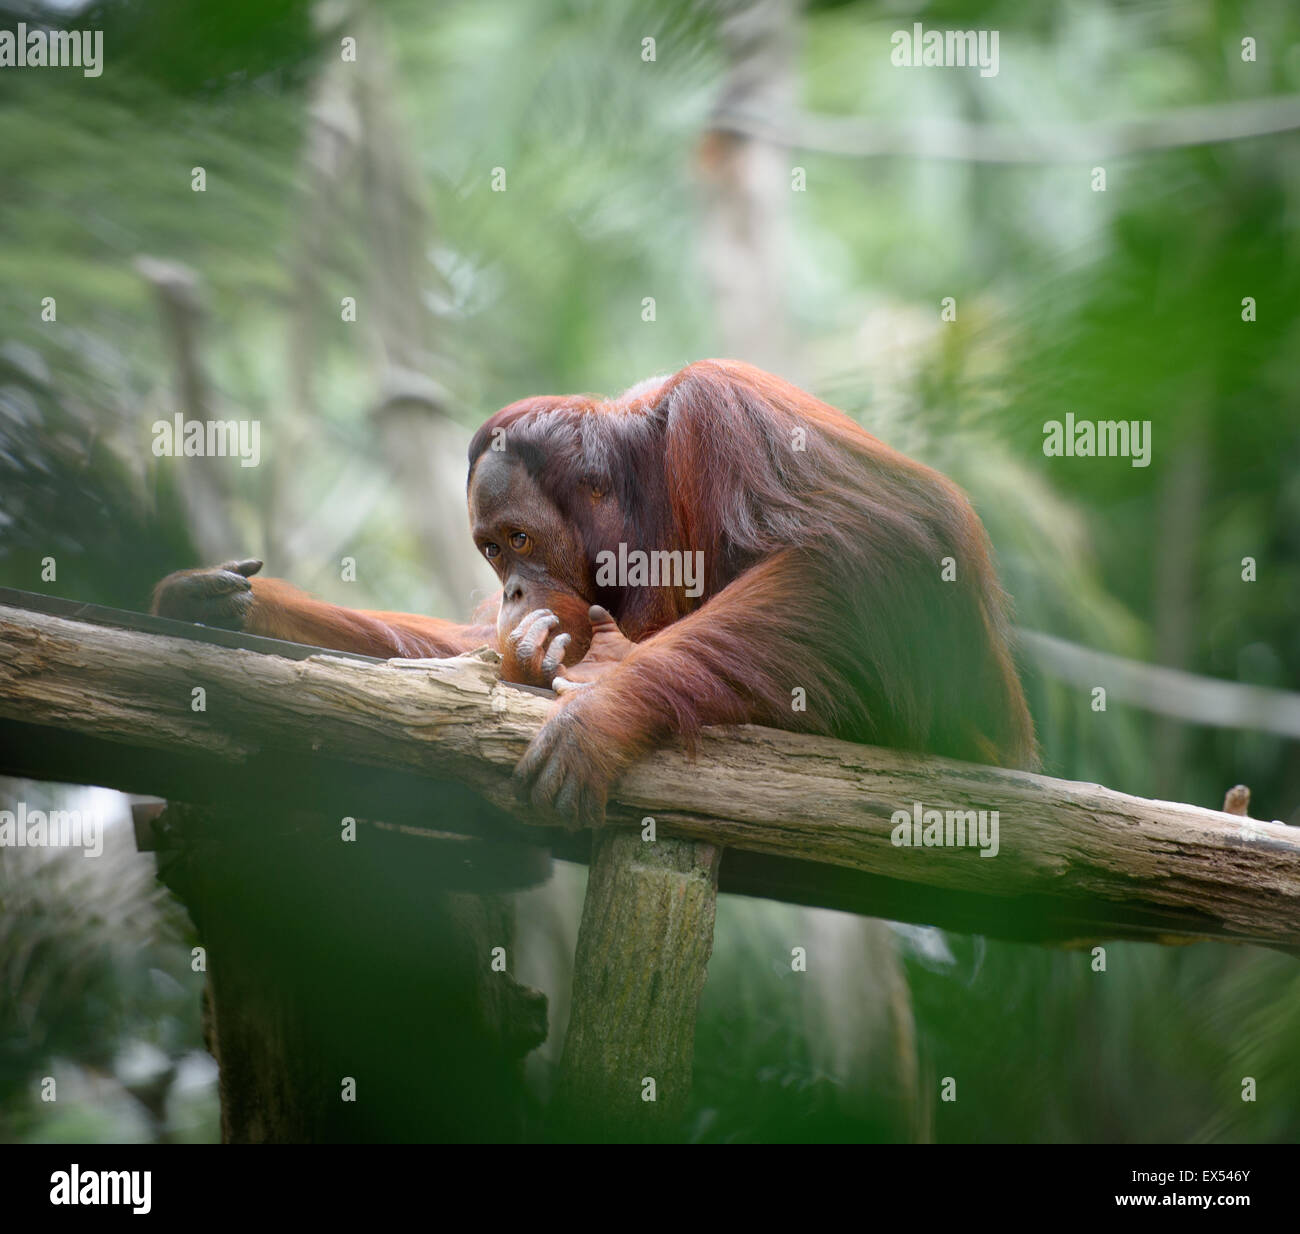 Adult orangutan sitting deep in thoughts, with jungle as a background, shallow depth of field - Stock Image